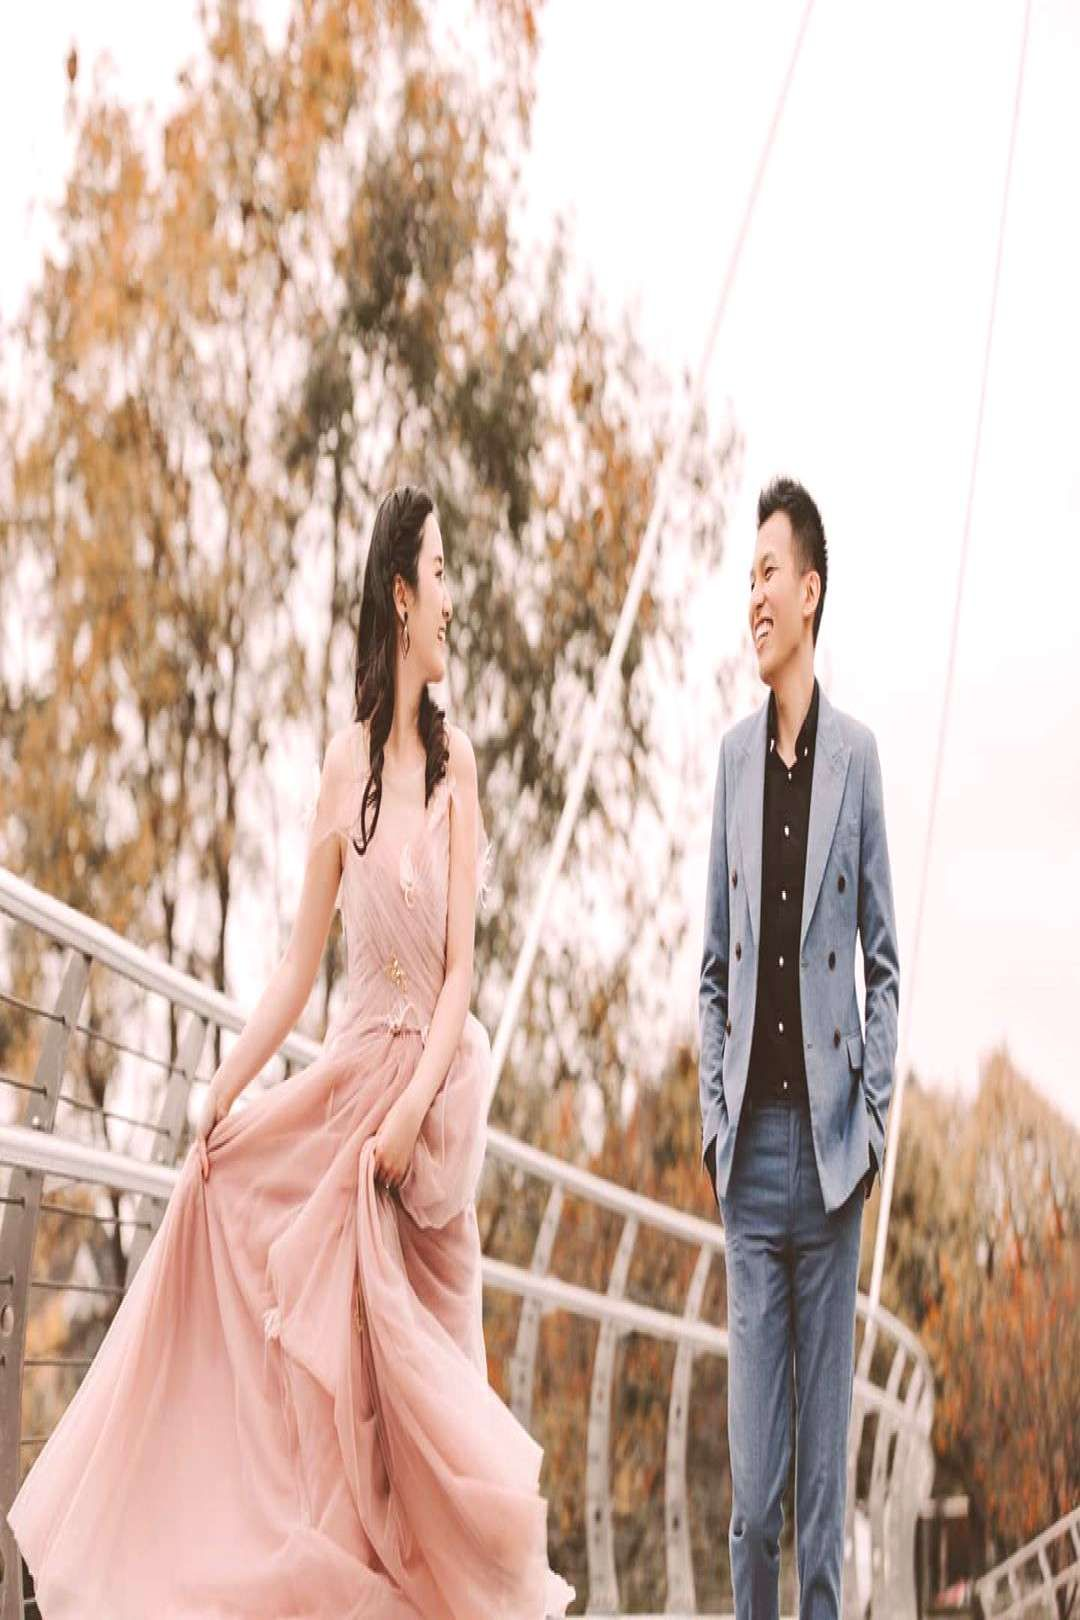 #putralphotography #peoplepeople #courtesy #captured #standing #brushed #outdoor #mua #and #of #by #2 Courtesy of & Captured by #PutraLphotography Brushed by .mua * * You can find Wedding inspiration and ...